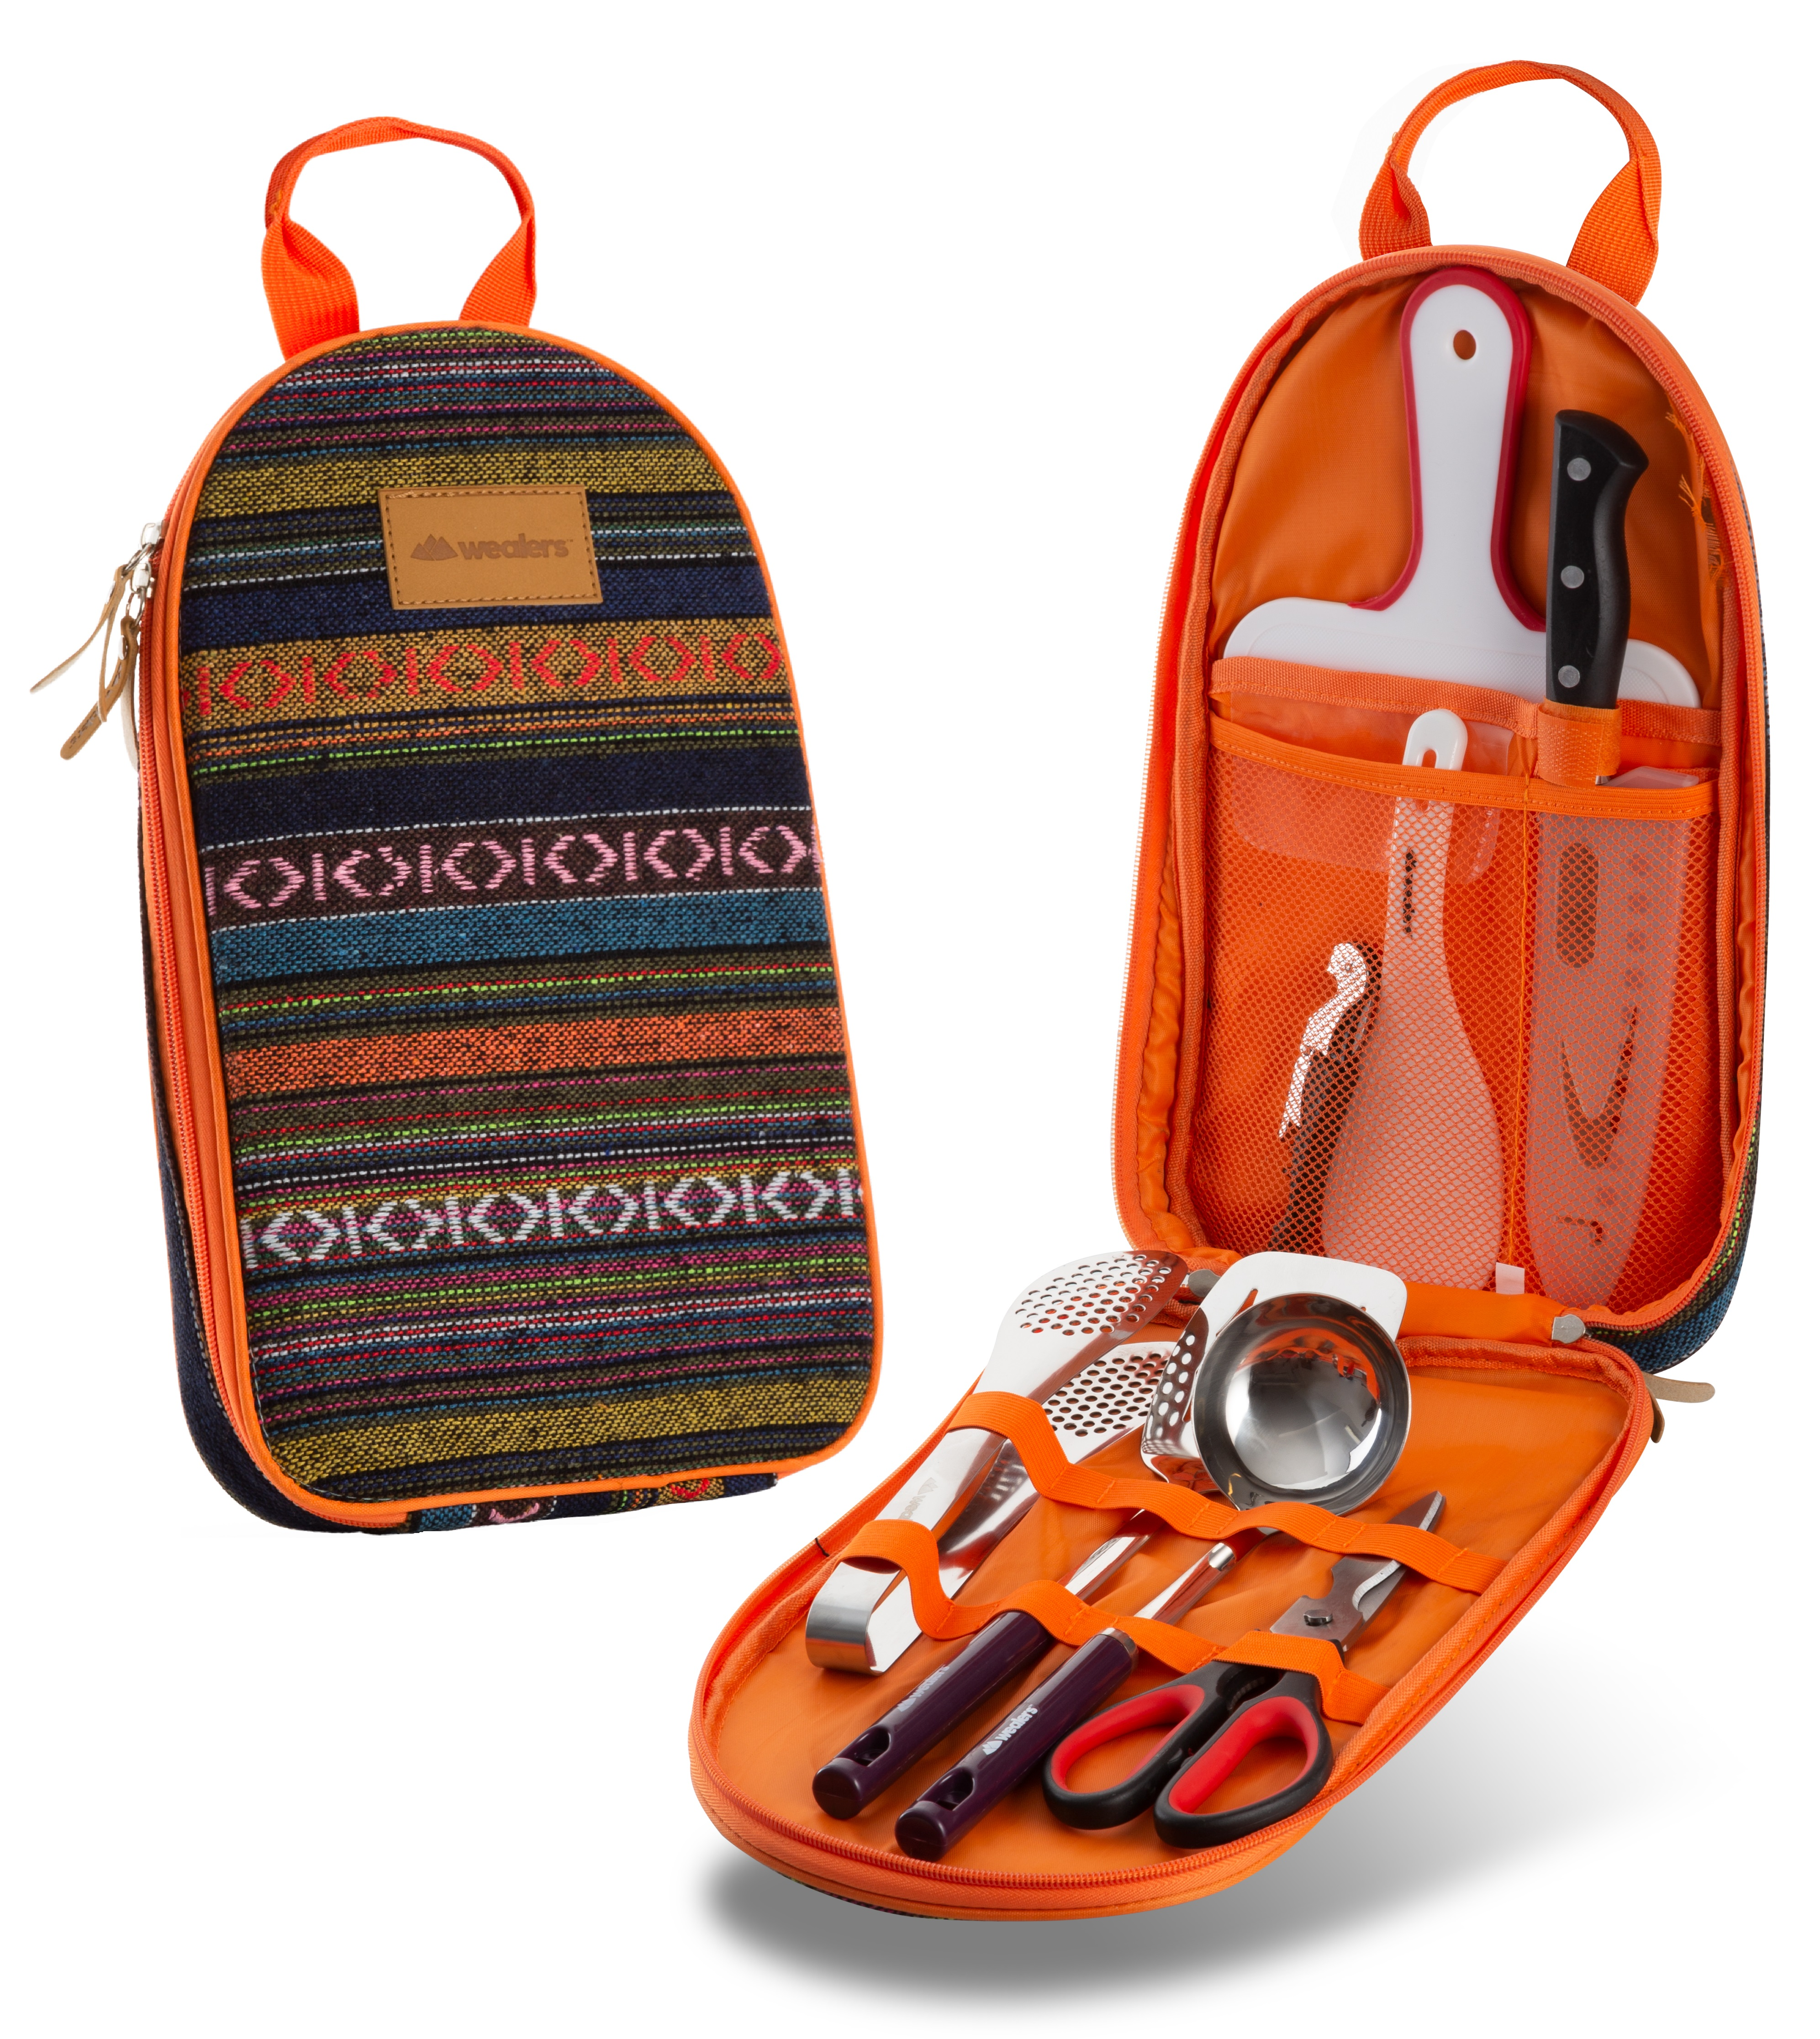 Cutting Board Outdoor Camping Rice Paddle and Water Resistant Case for Backpacking Scissors Knife Camp Kitchen Utensil Organizer with Tongs Odoland 8 Pcs Camping Cookware Utensils Travel Set